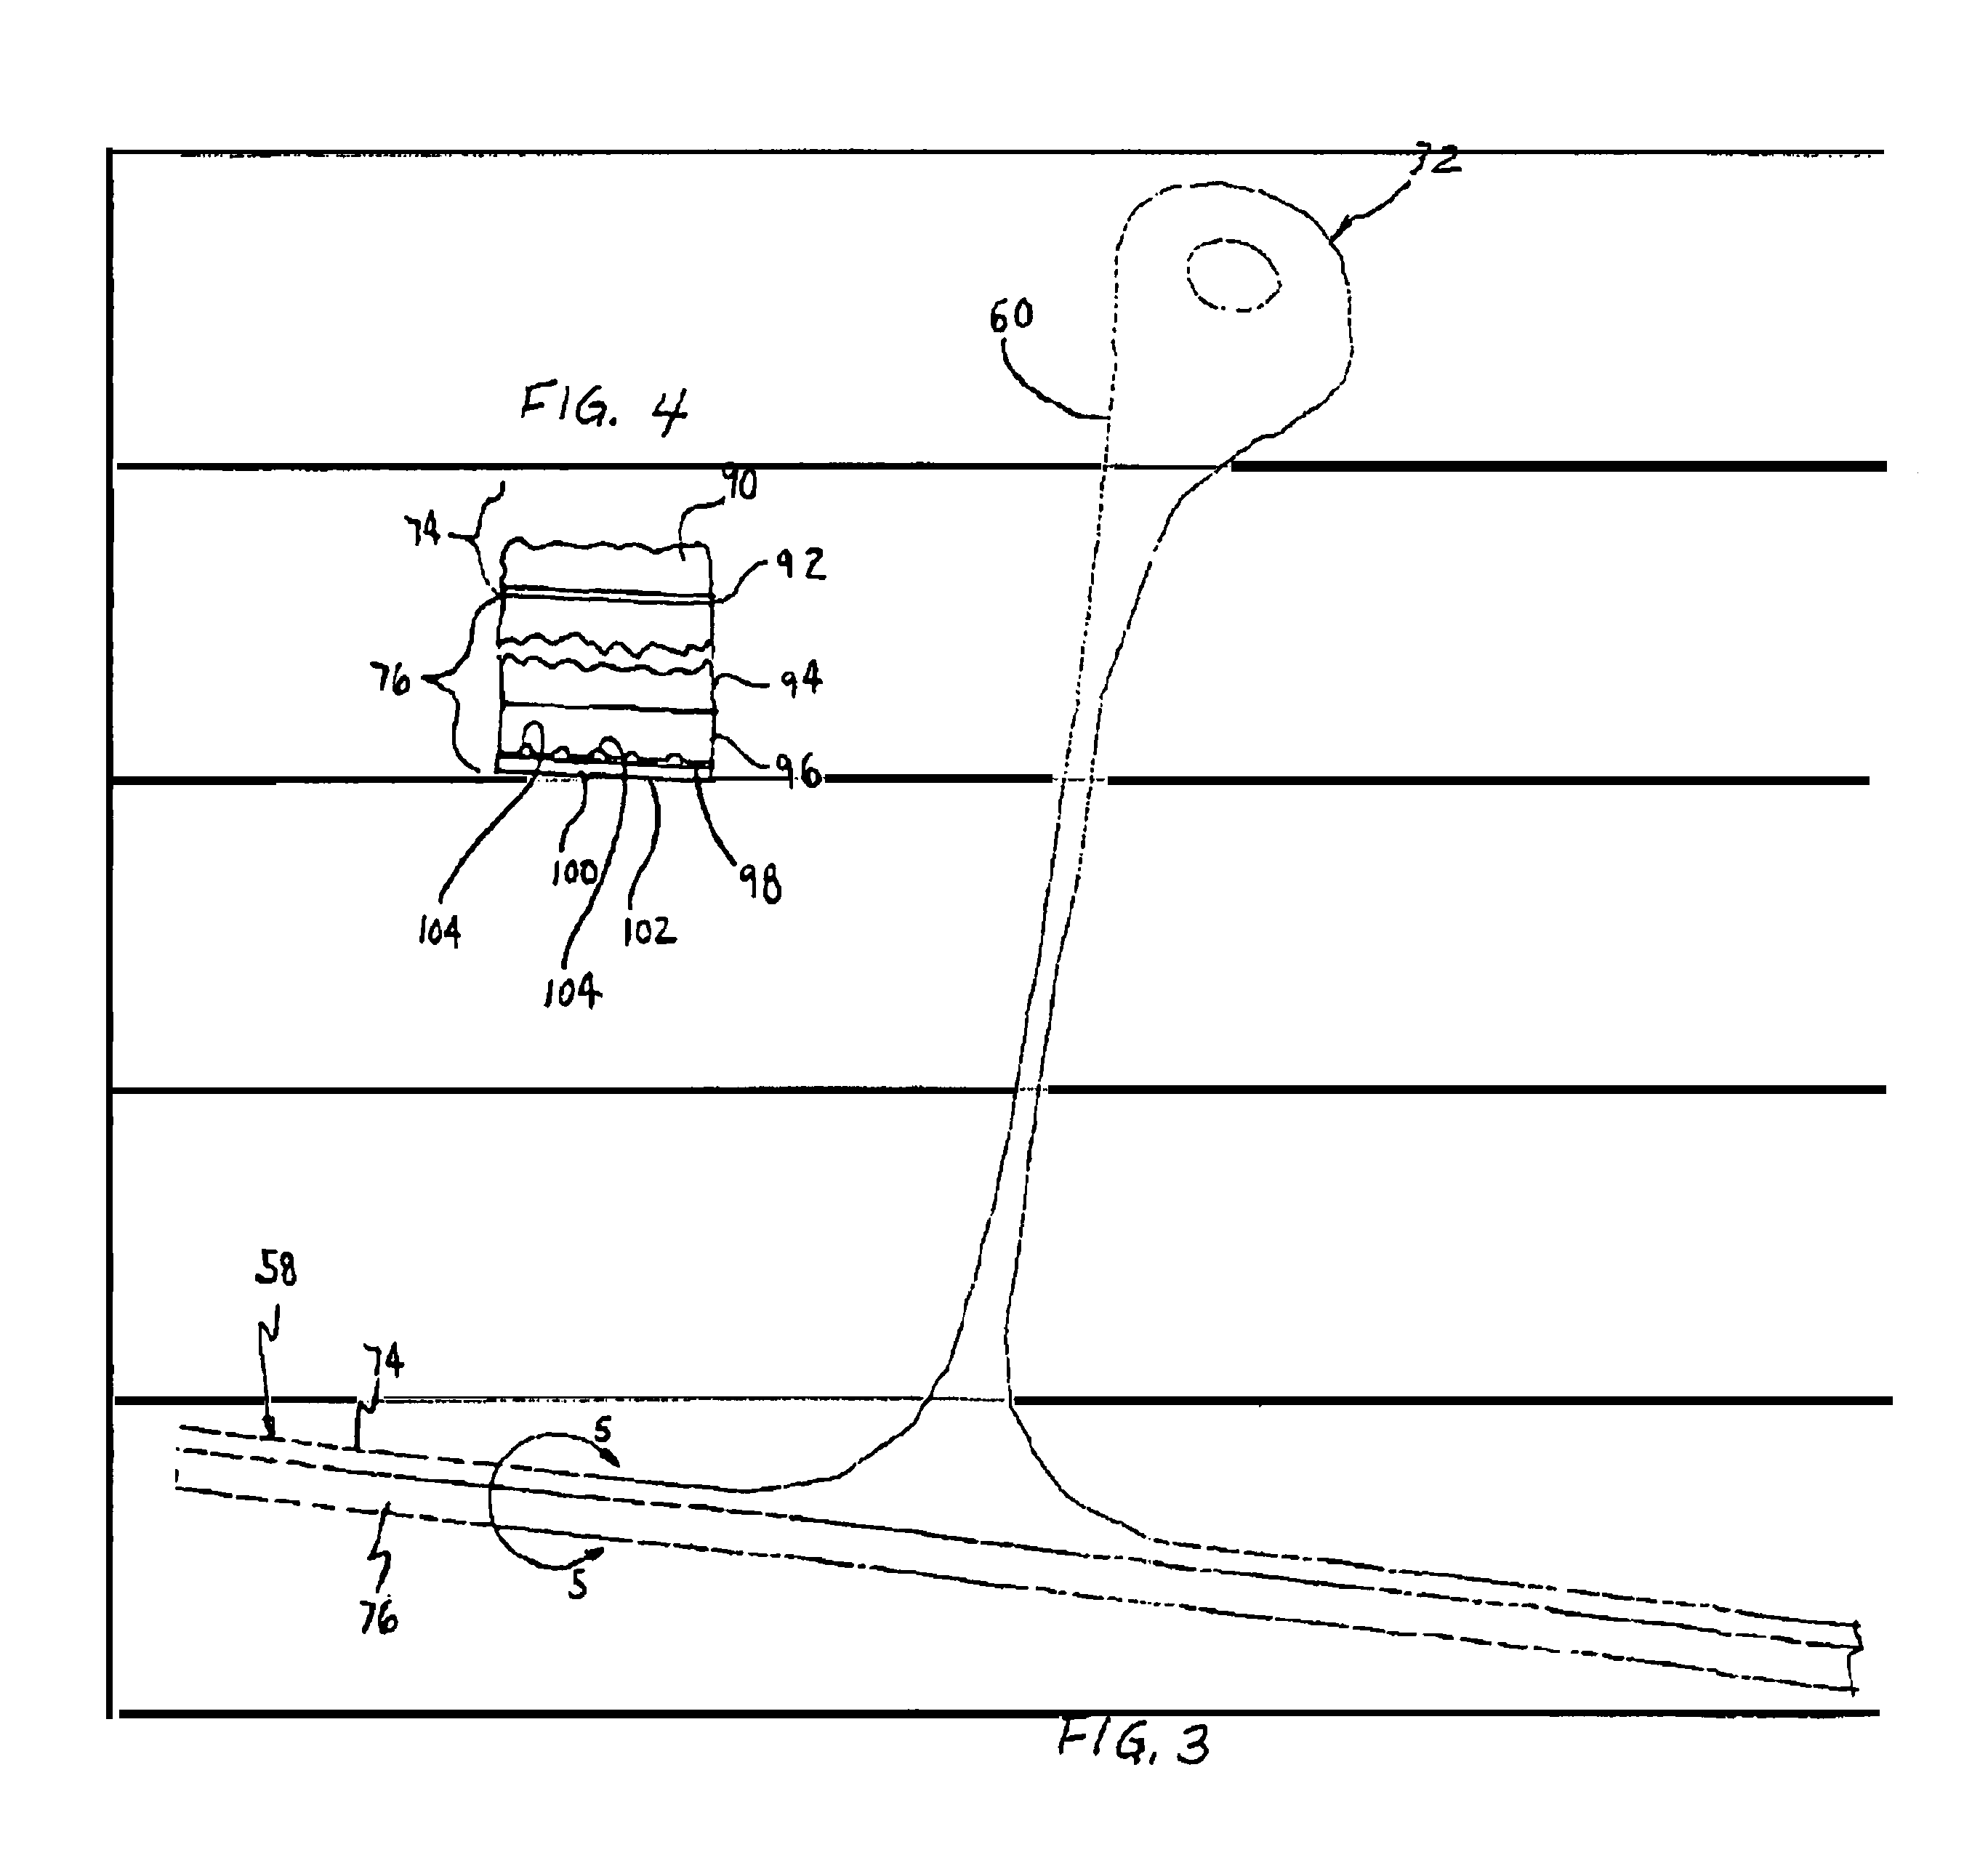 rj31x wiring diagram 1999 acura integra stereo pacific front loader mcneilus schematic for 2009